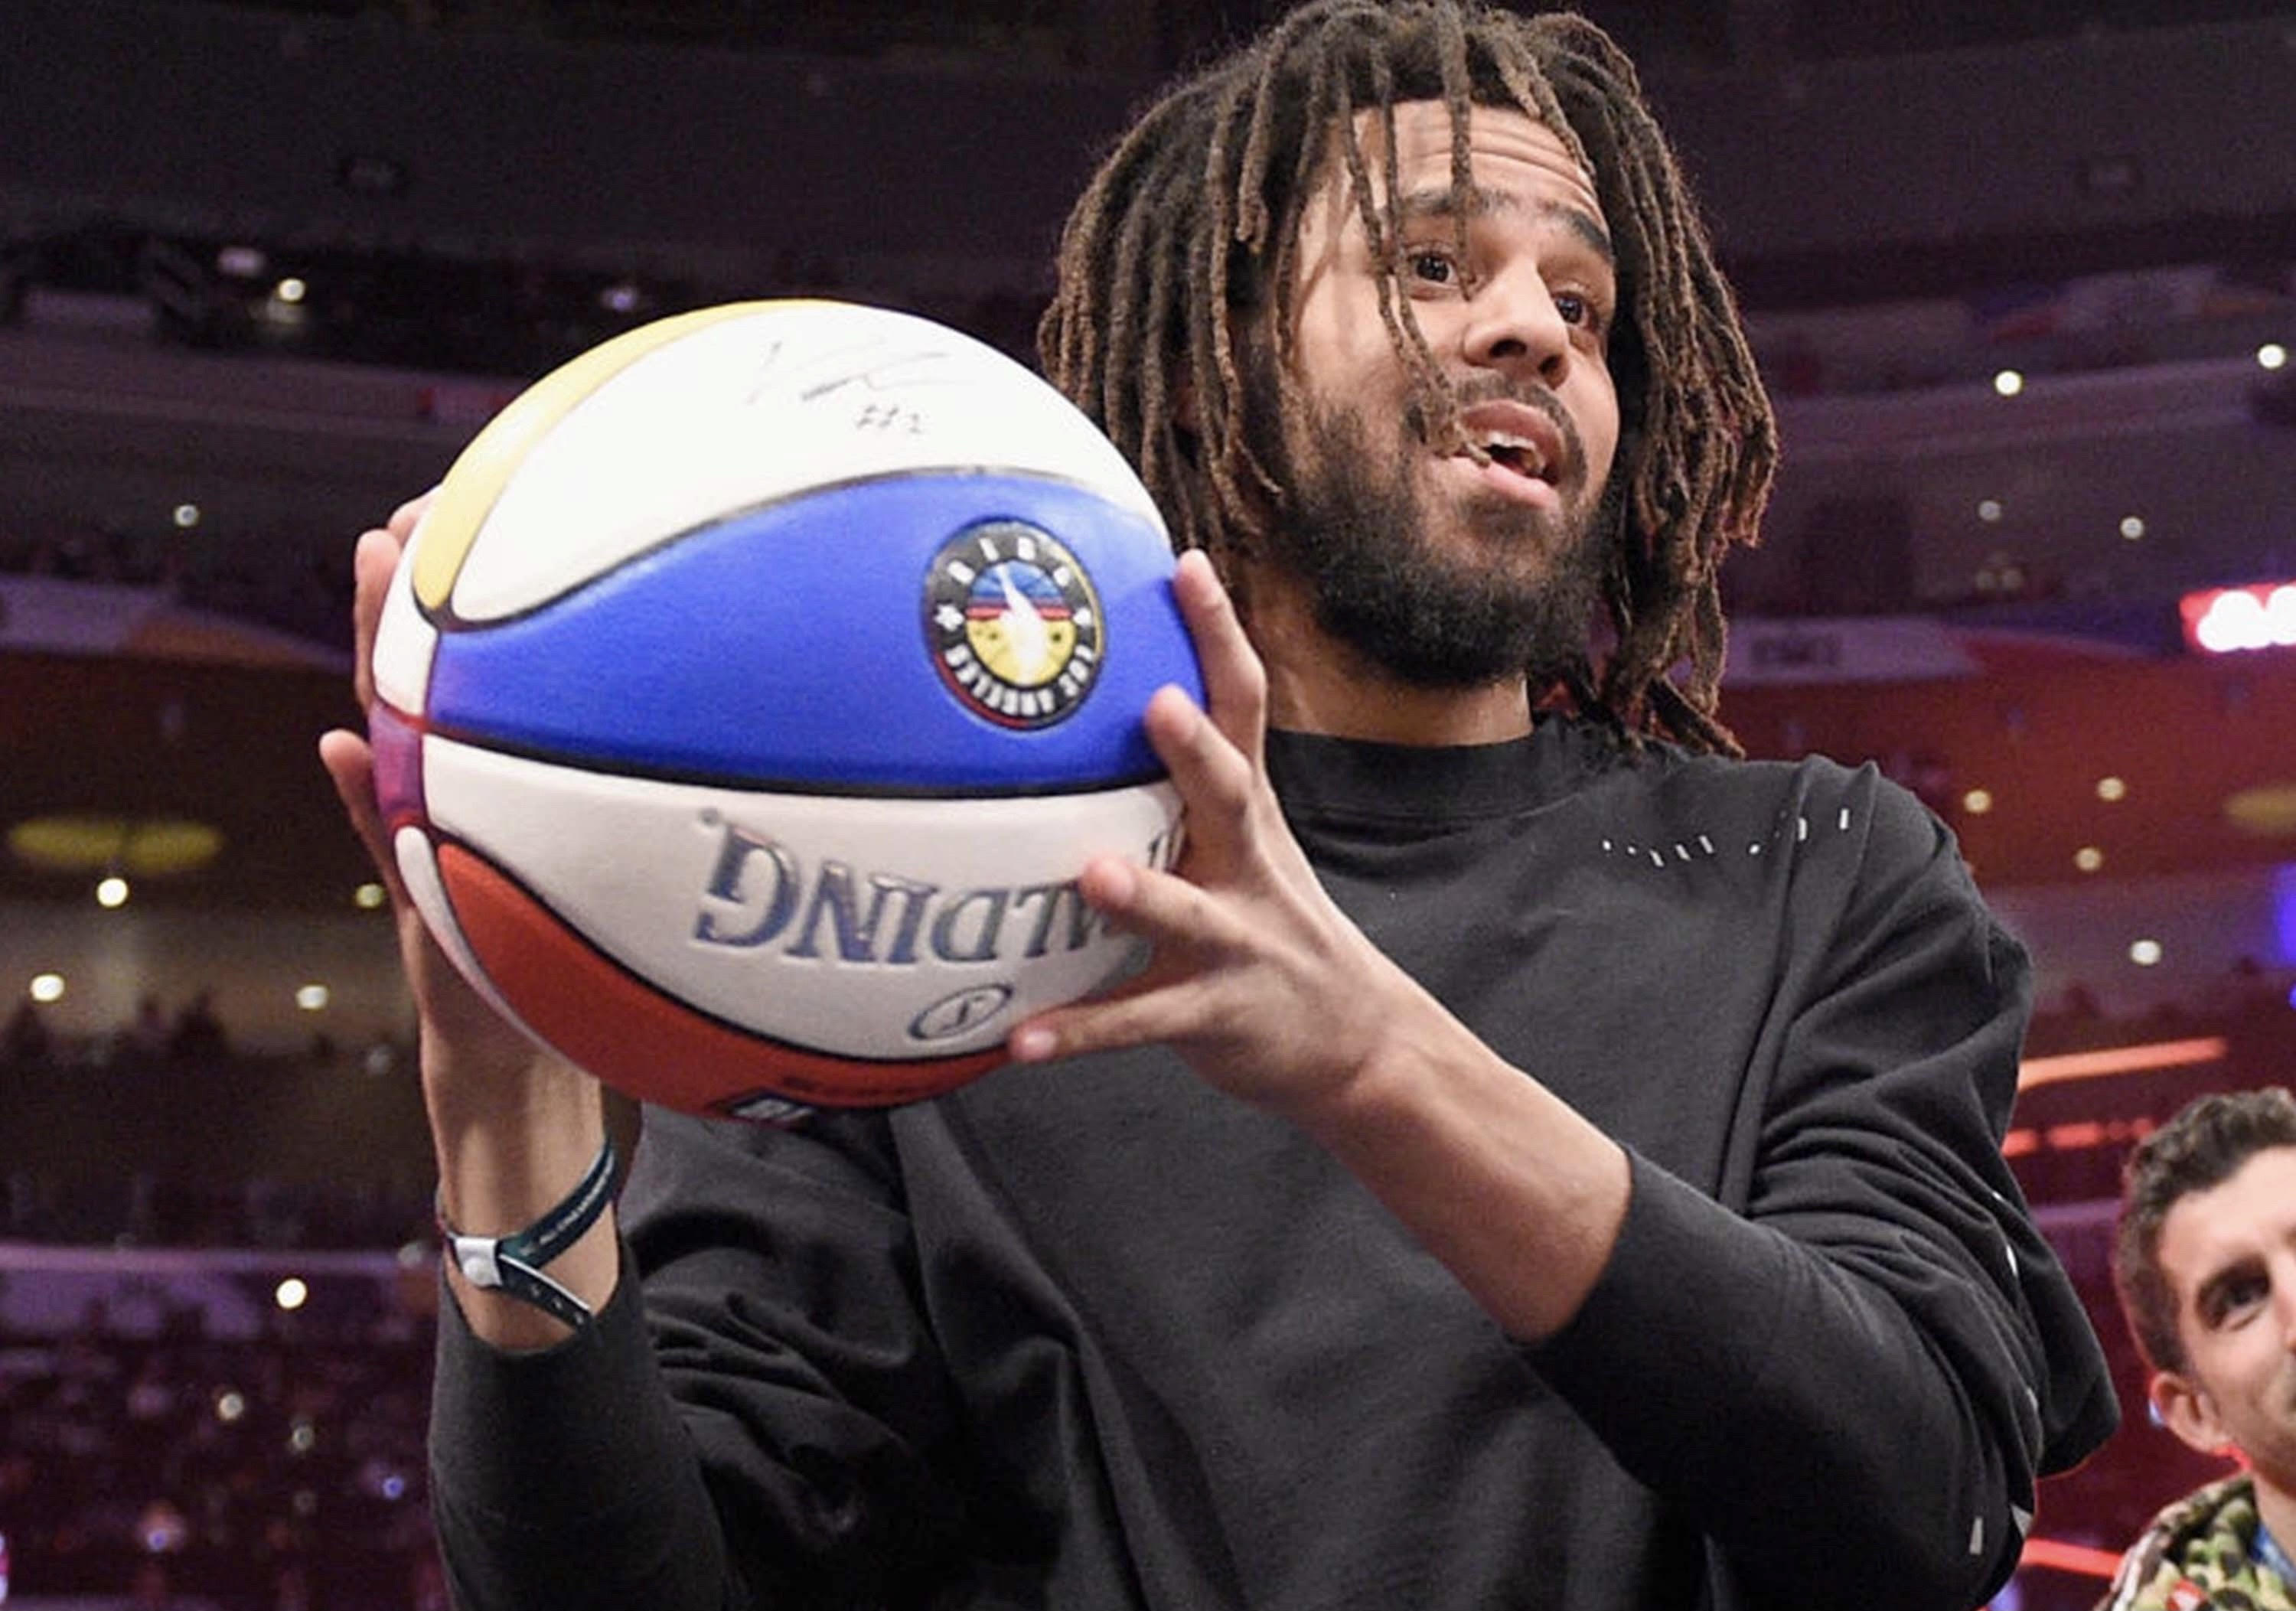 BAL Player Suggests J. Cole Playing For League Is Disrespectful